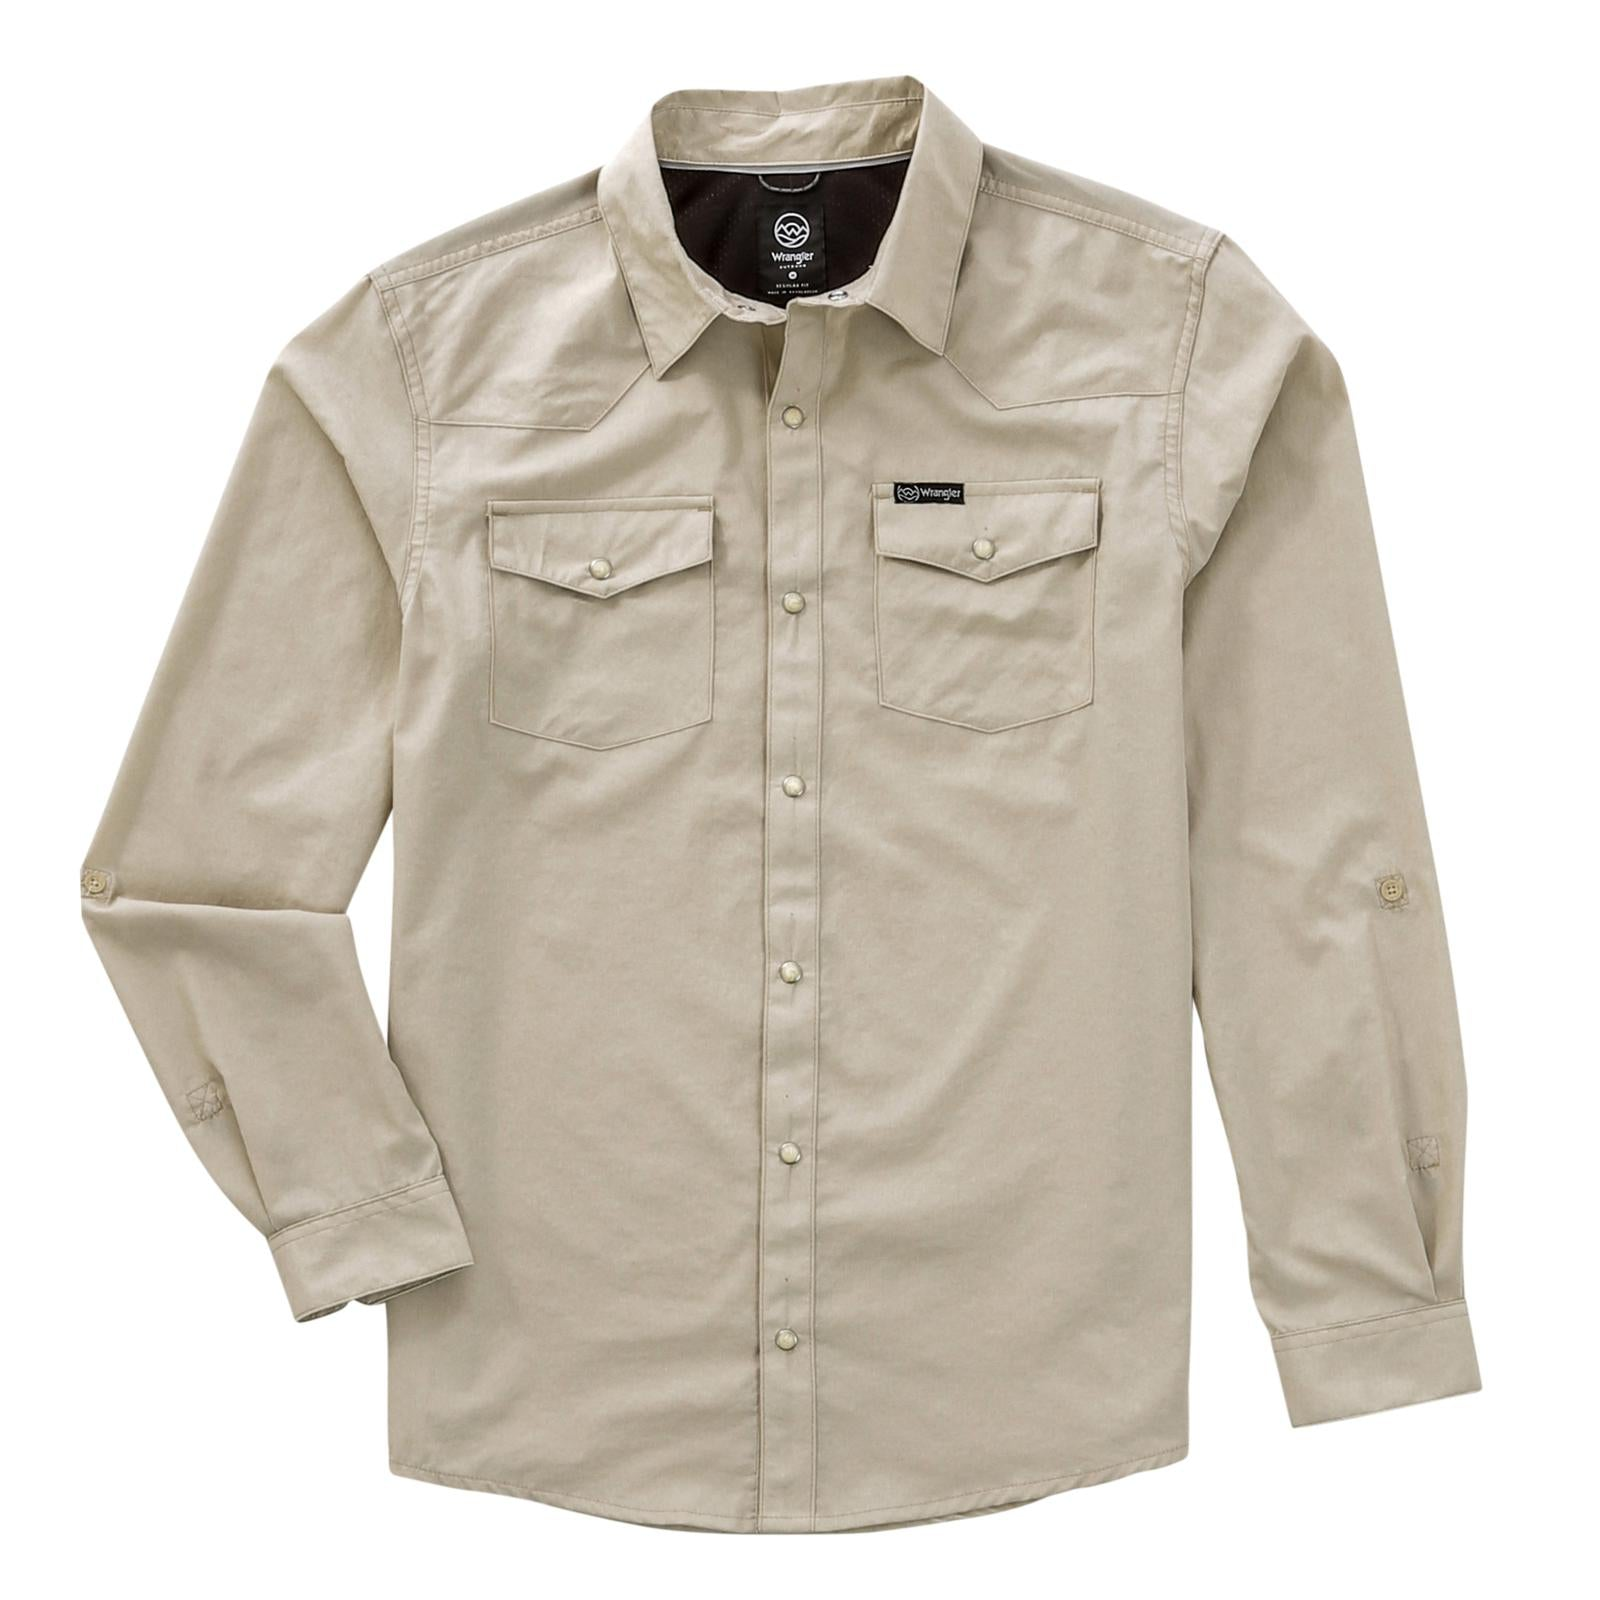 Wrangler All Terrain Gear Long Sleeve Outdoor Charlie Shirt